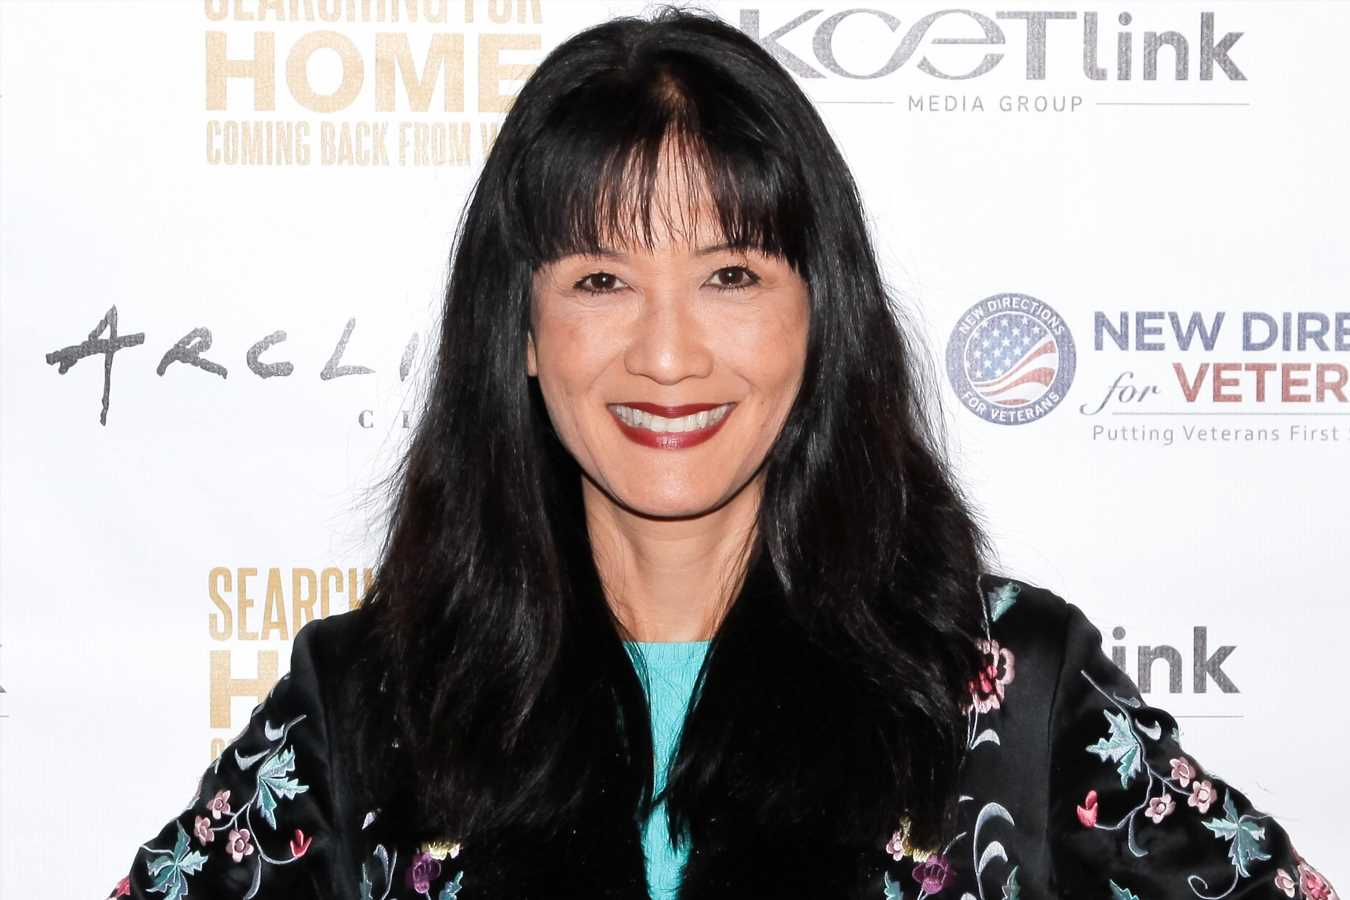 Suzanne Whang dead: House Hunters host dies at 56